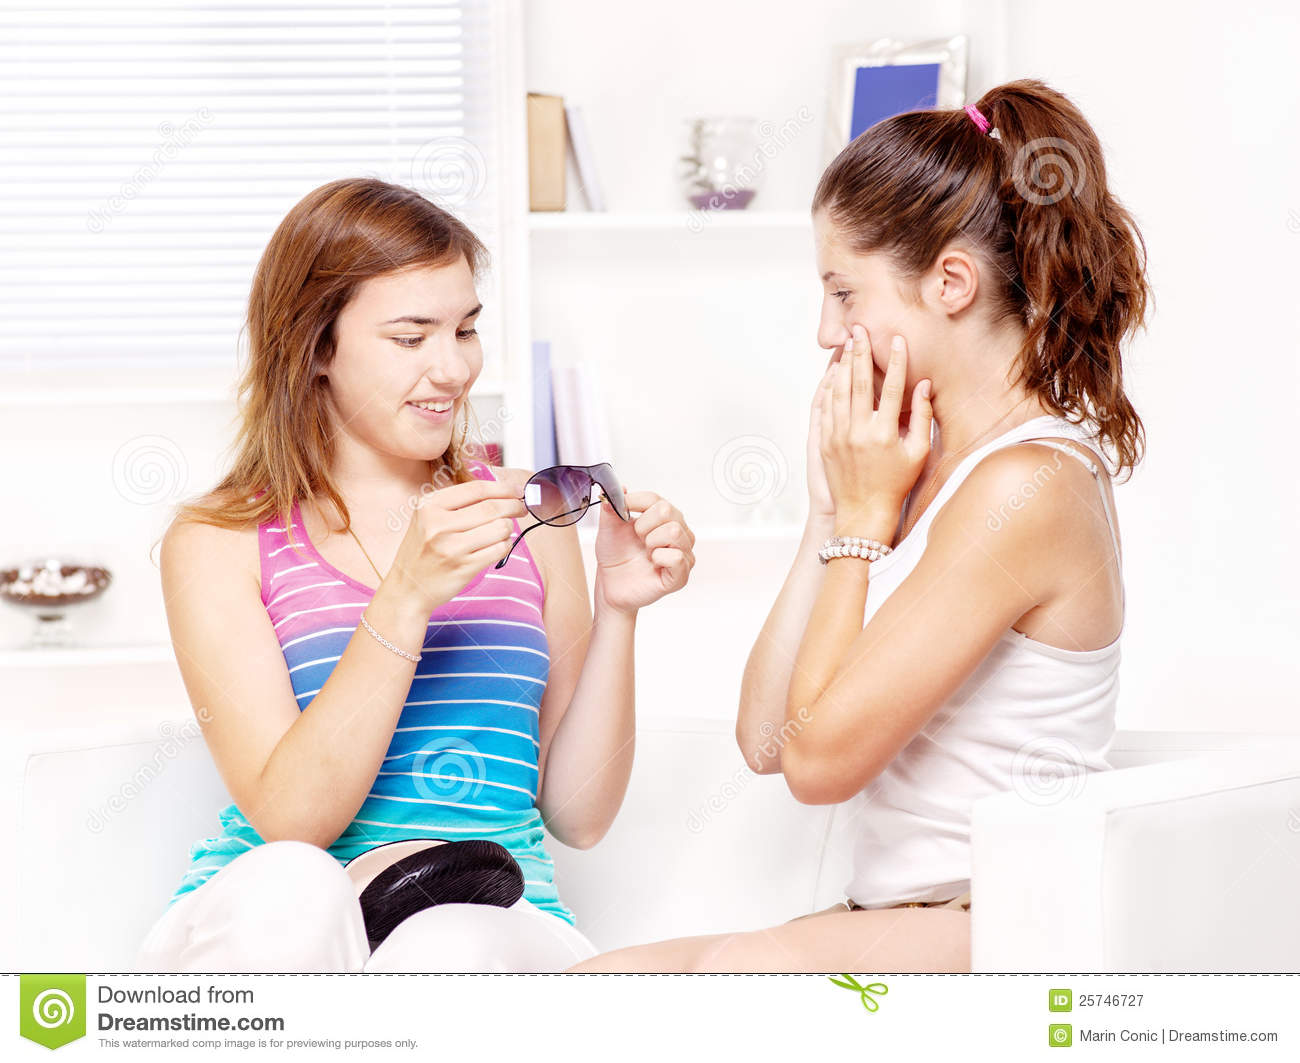 Girl shows sunglasses to her friend